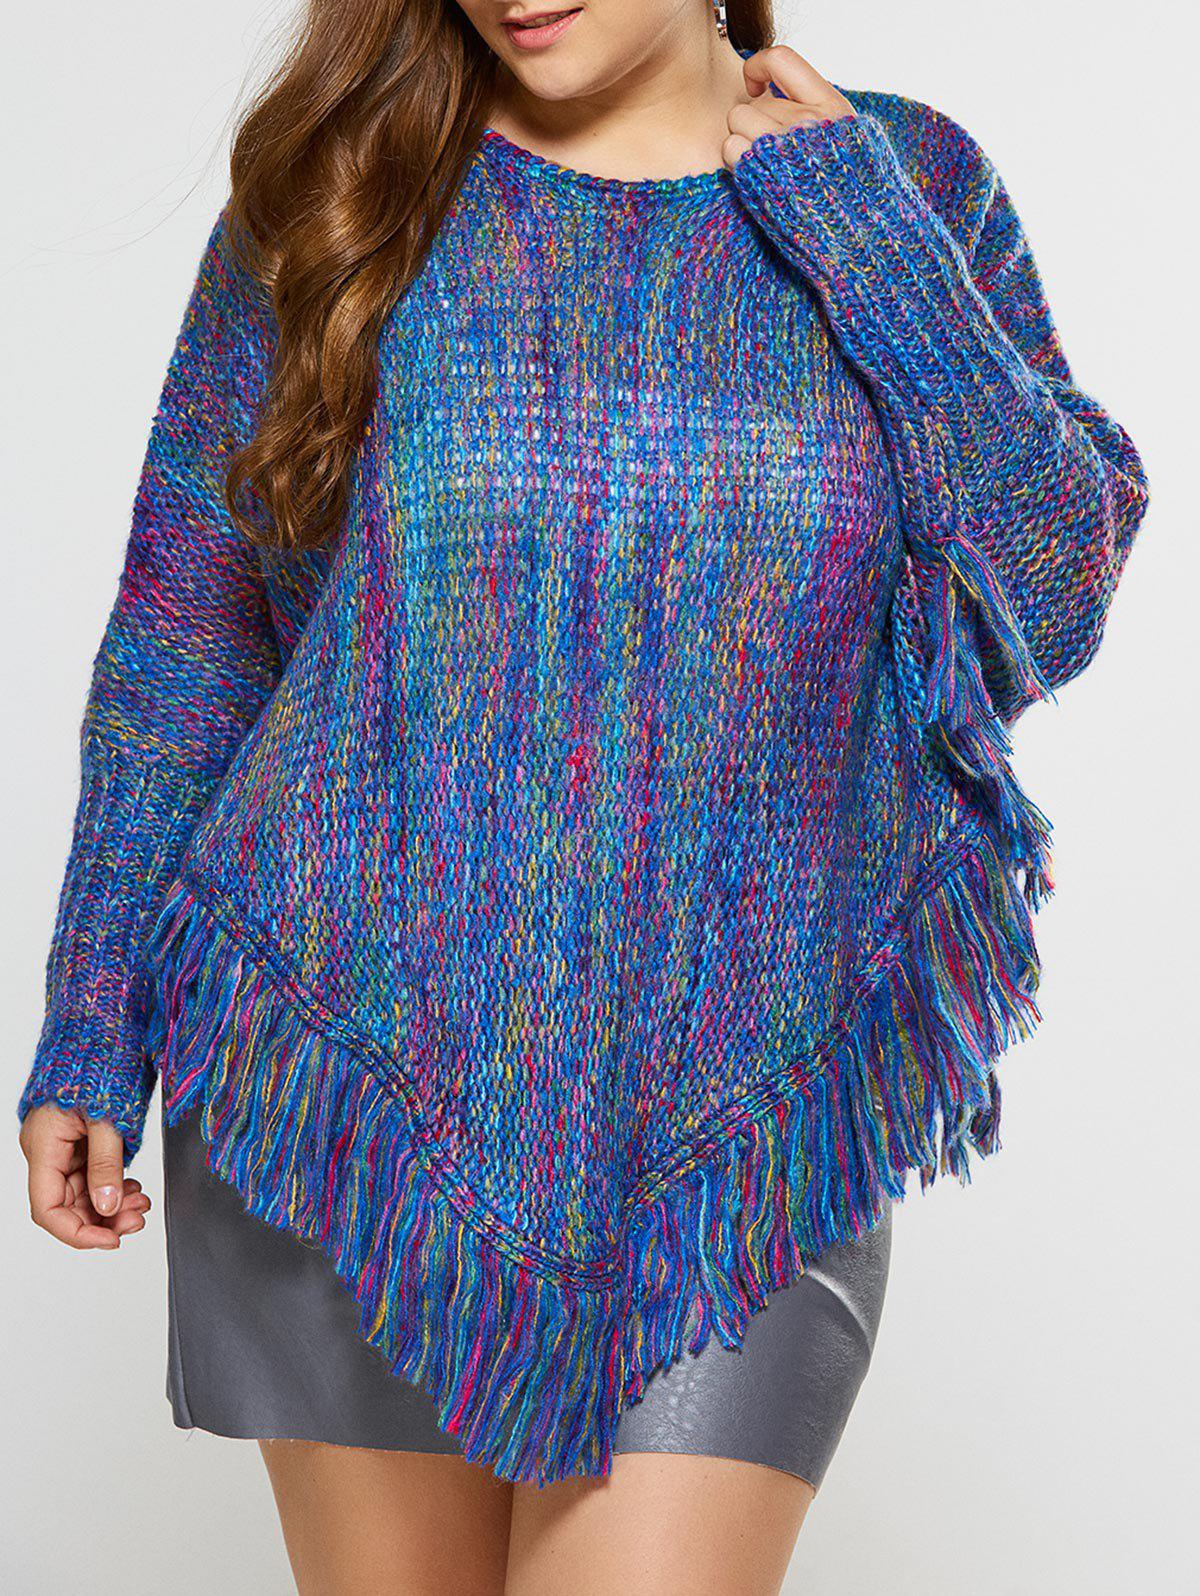 Asymmetric Fringe Poncho SweaterWOMEN<br><br>Size: 3XL; Color: BLUE; Type: Pullovers; Material: Polyester; Sleeve Length: Full; Collar: Crew Neck; Style: Casual; Pattern Type: Others; Season: Fall,Spring,Winter; Weight: 0.550kg; Package Contents: 1 x Sweater;